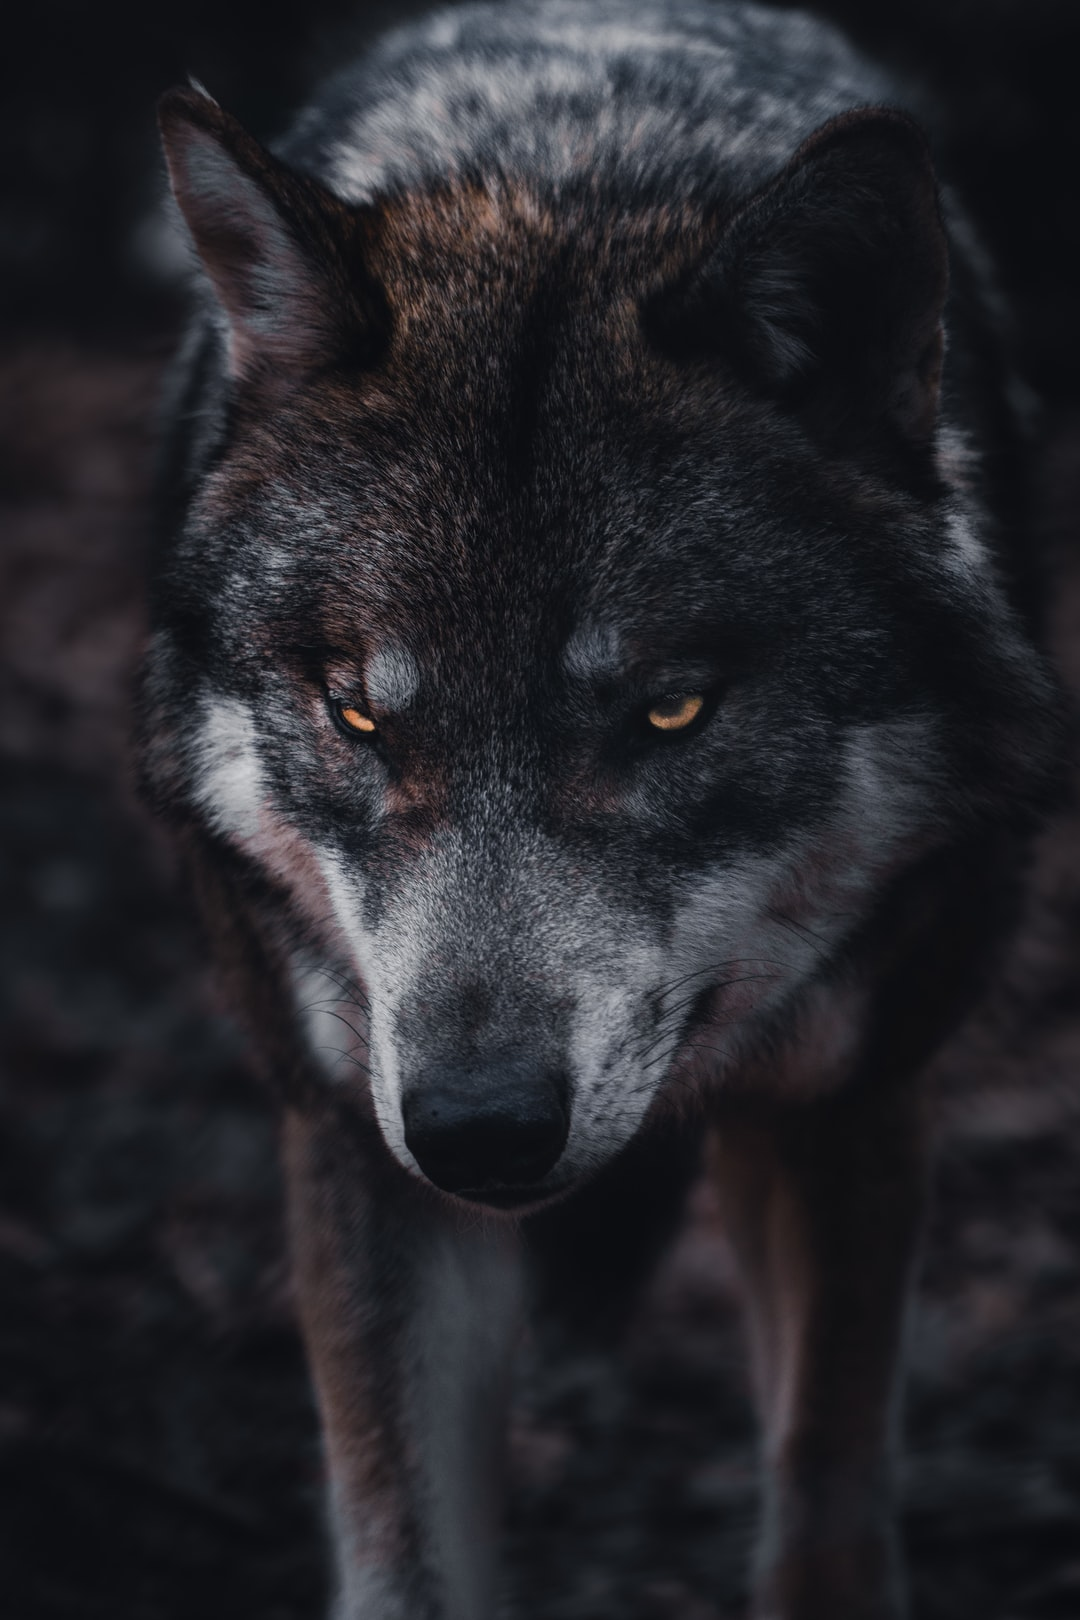 moody wolf face